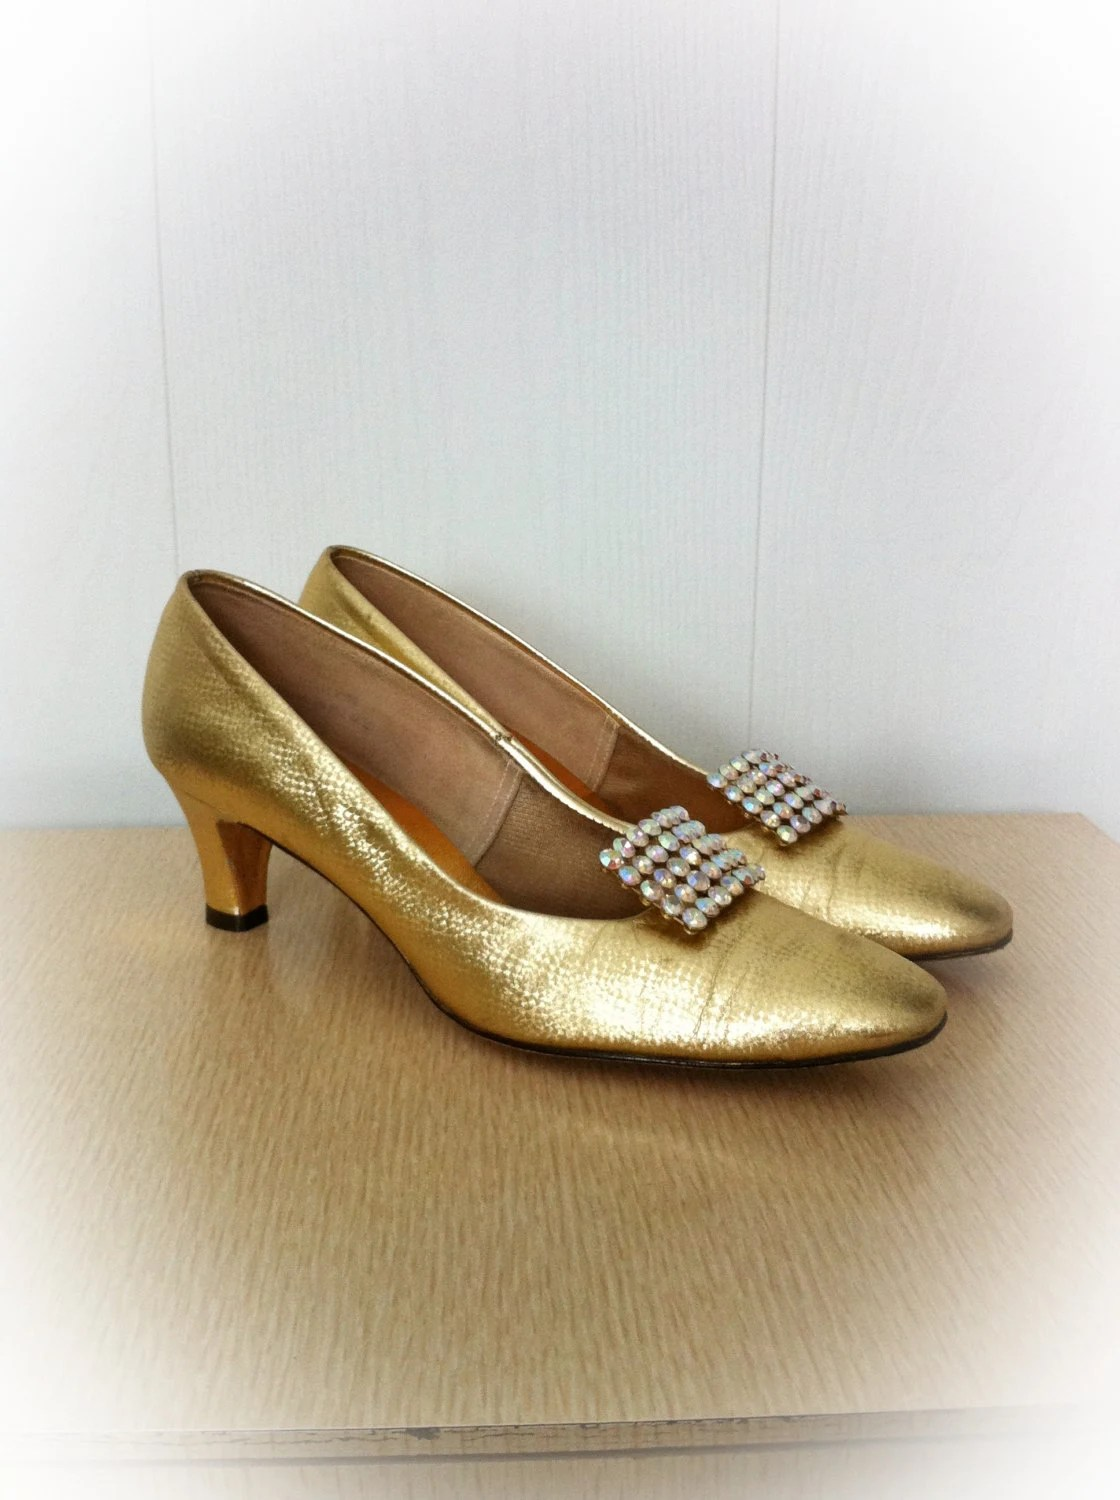 Vintage 1970s Shoes Gold Miss Wonderful High Heels with